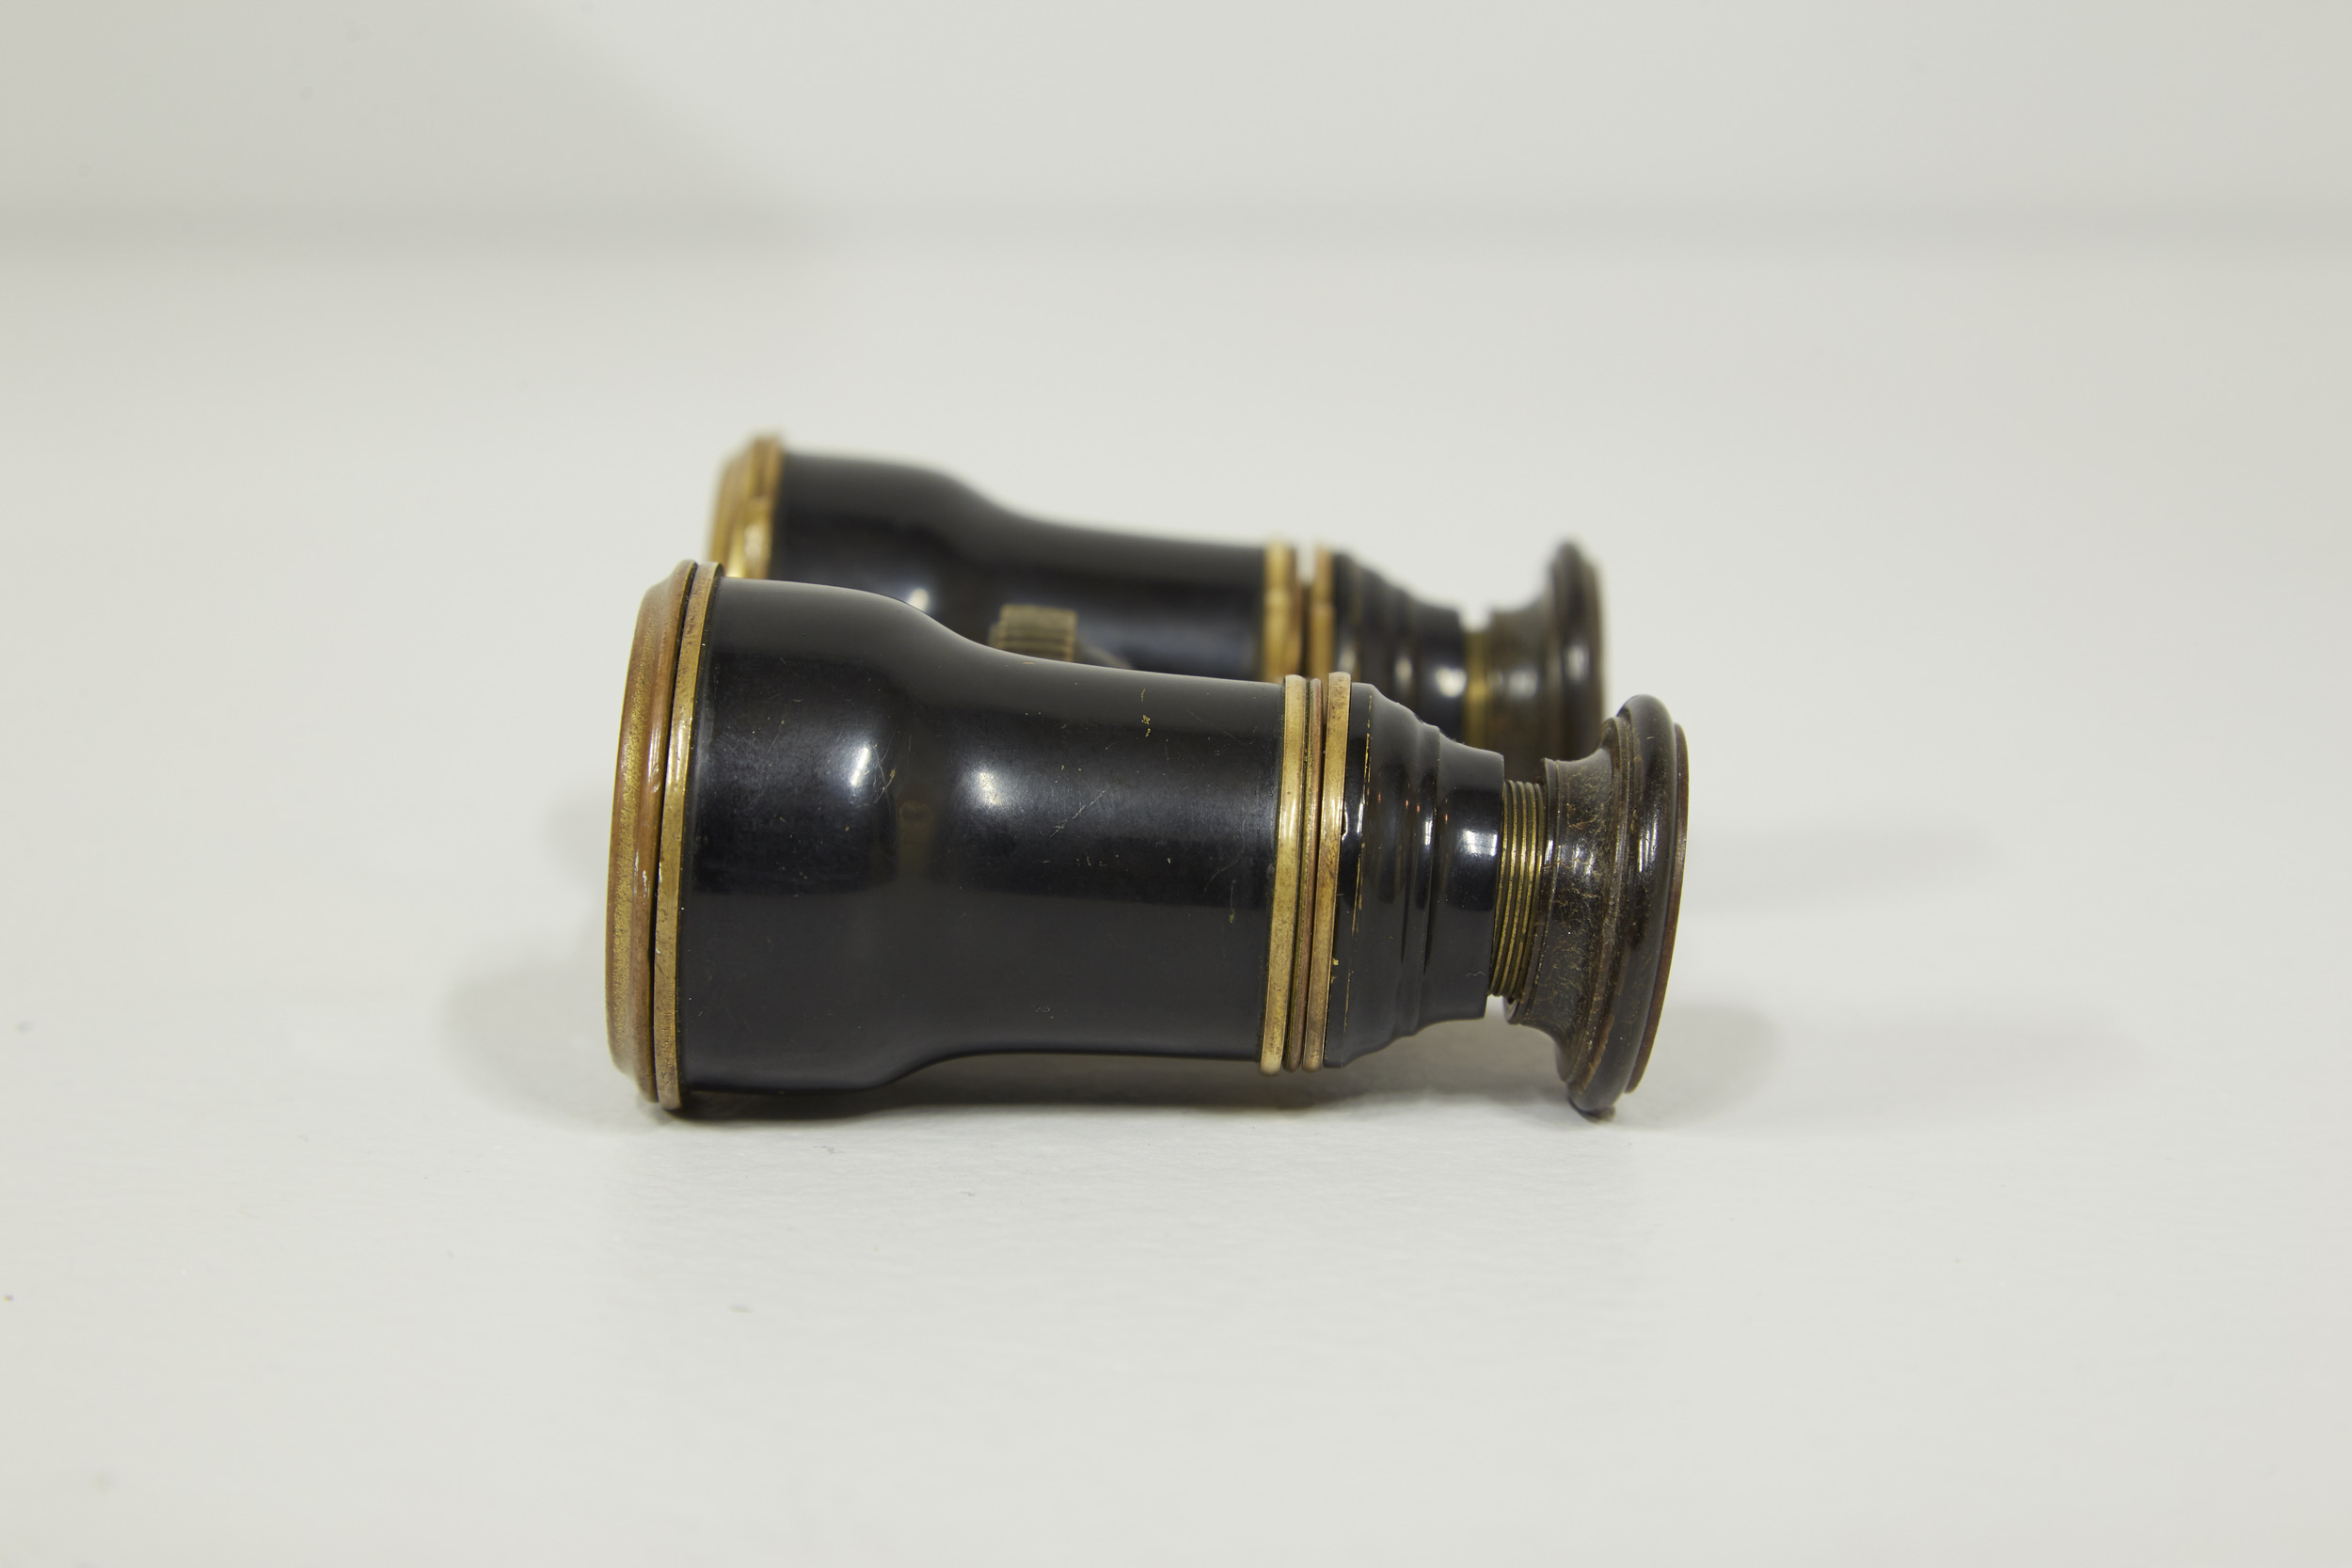 The opera glasses showing the tilted eyepiece, leaving hints the unique history accompanying the binoculars.  .